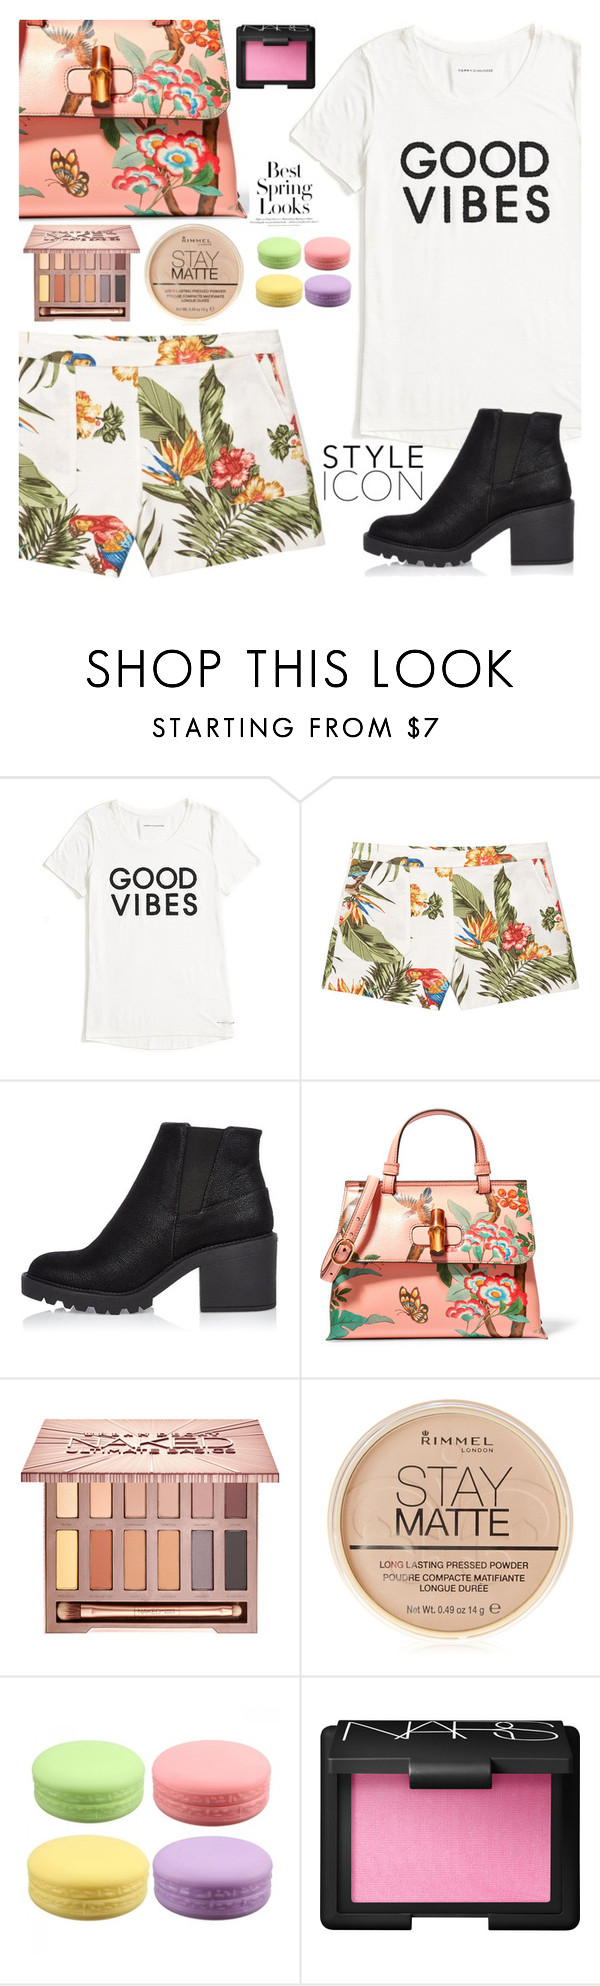 """Good Vibes"" by mirmir-825 ❤ liked on Polyvore featuring Tommy Hilfiger, MANGO, River Island, Gucci, Urban Decay, Rimmel, NARS Cosmetics, H&M, Boots and Floralshorts"